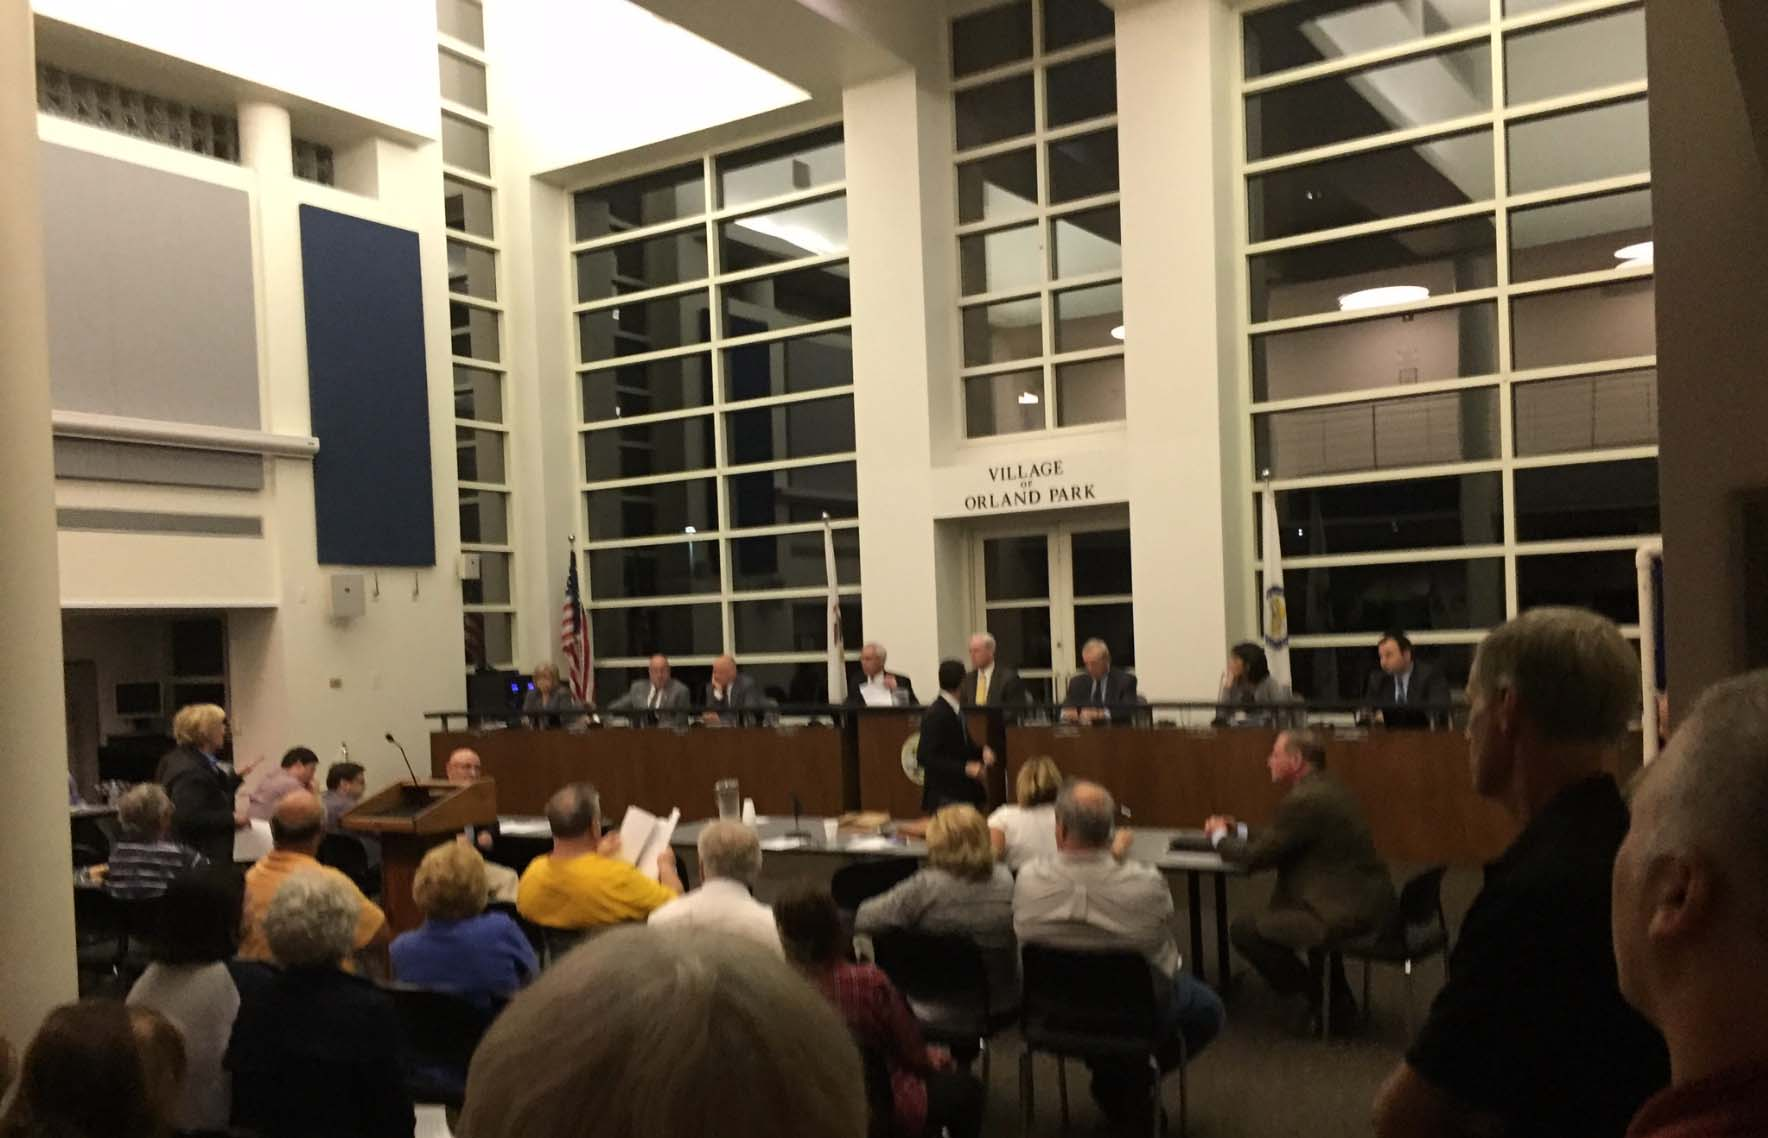 About 100 Residents of Orland Park filled the board meeting room Monday Oct. 17, 2016 to protest increasing Mayor Dan McLaughlin's salary 375 percent from $40,000 to $150,000 a year. Photo courtesy of Ray Hanania.